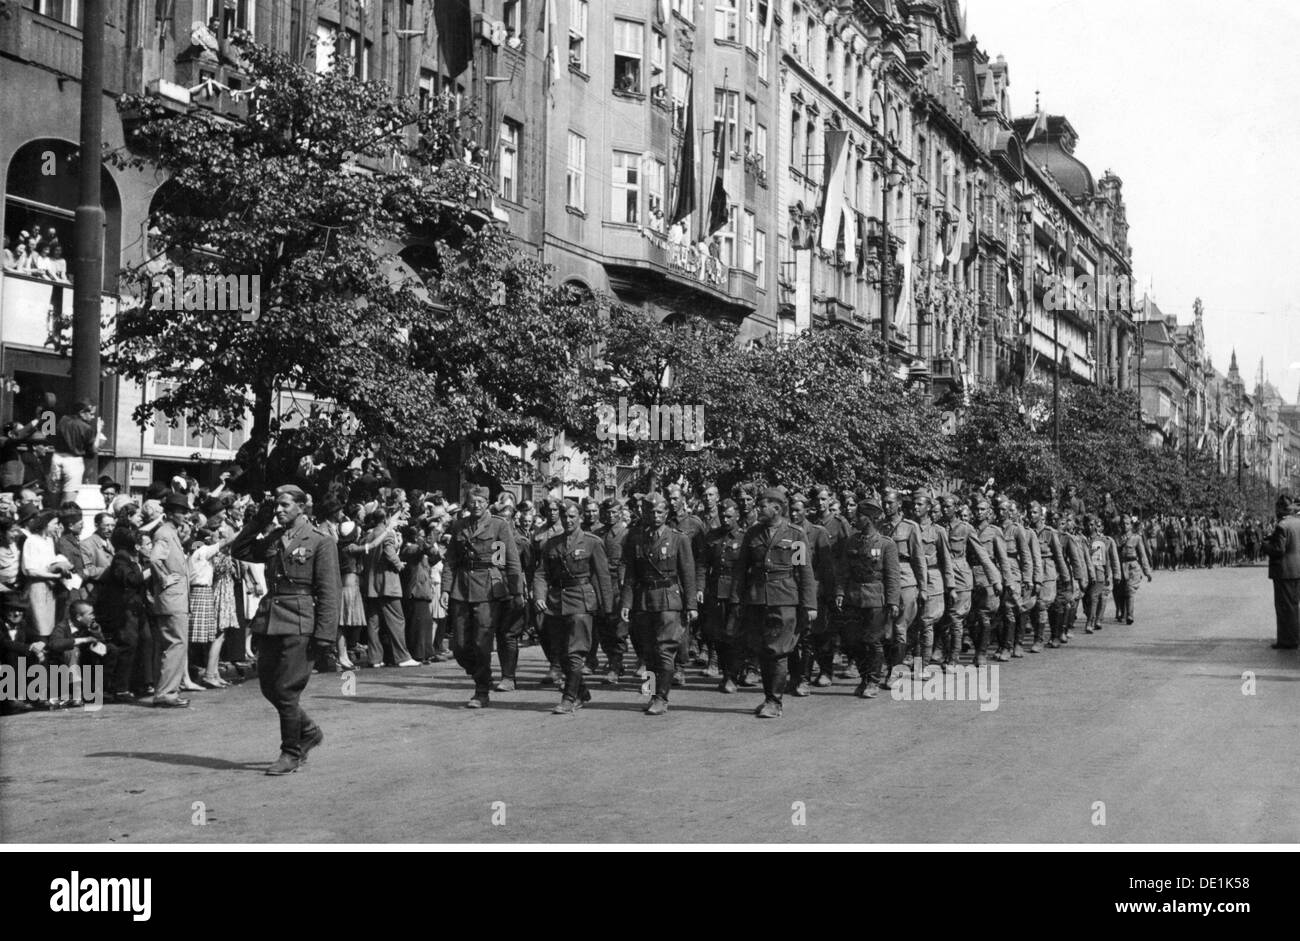 Second World War / WWII, Czechoslovakia, Prague Uprising, May 1945, victory parade, unit of the Czechoslovakian exile army, 17.5.1945, 20th century, 1940s, 40s, Czechia, Czech Republic, resistance, Red Army, military, soldiers, soldier, half length, march, marching, uniform, uniforms, military parade, street, streets, victory, victories, liberation, liberations, liberator, liberators, entry, marching in, crowd, crowds, crowds of people, military review, world war, world wars, uprising, rising, uprisings, Prague, Praha, unit, units, historic, historical, people, Additional-Rights-Clearences-NA - Stock Image